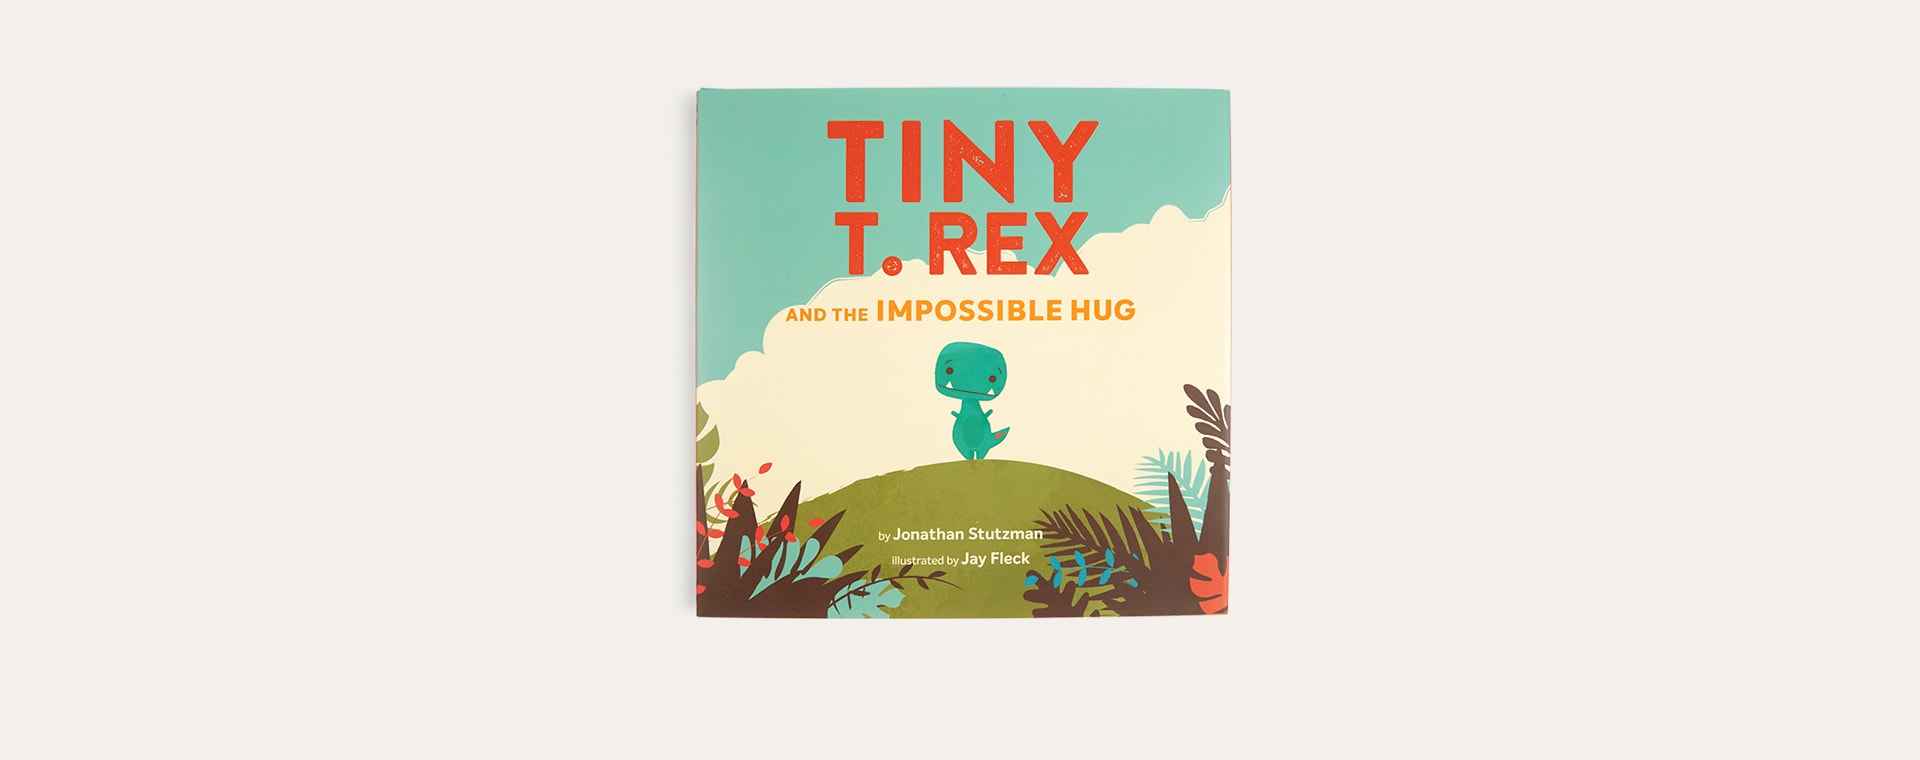 Multi Abrams & Chronicle Books Tiny T. Rex and the Impossible Hug